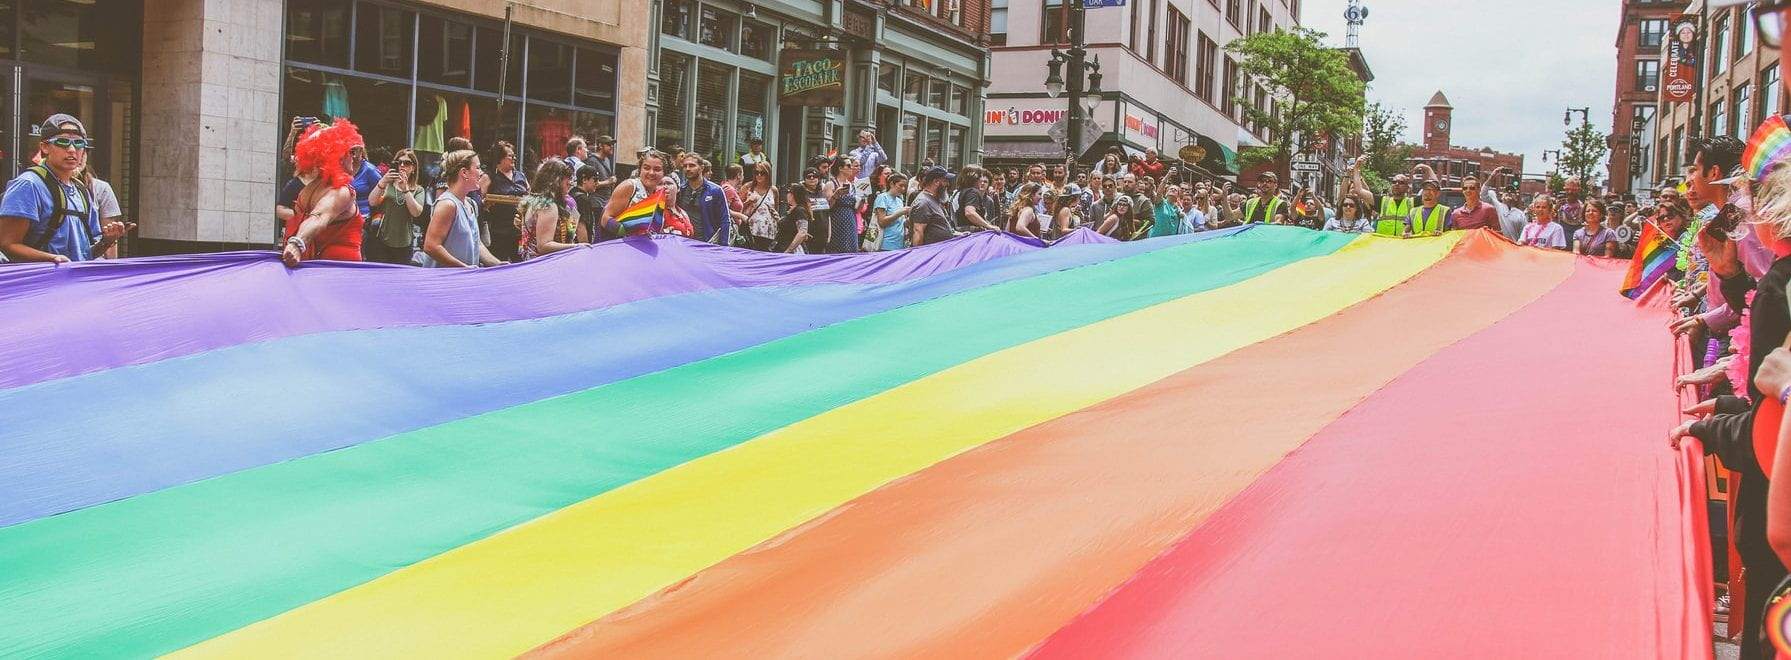 large rainbow flag being held by a large group of people in a city centre